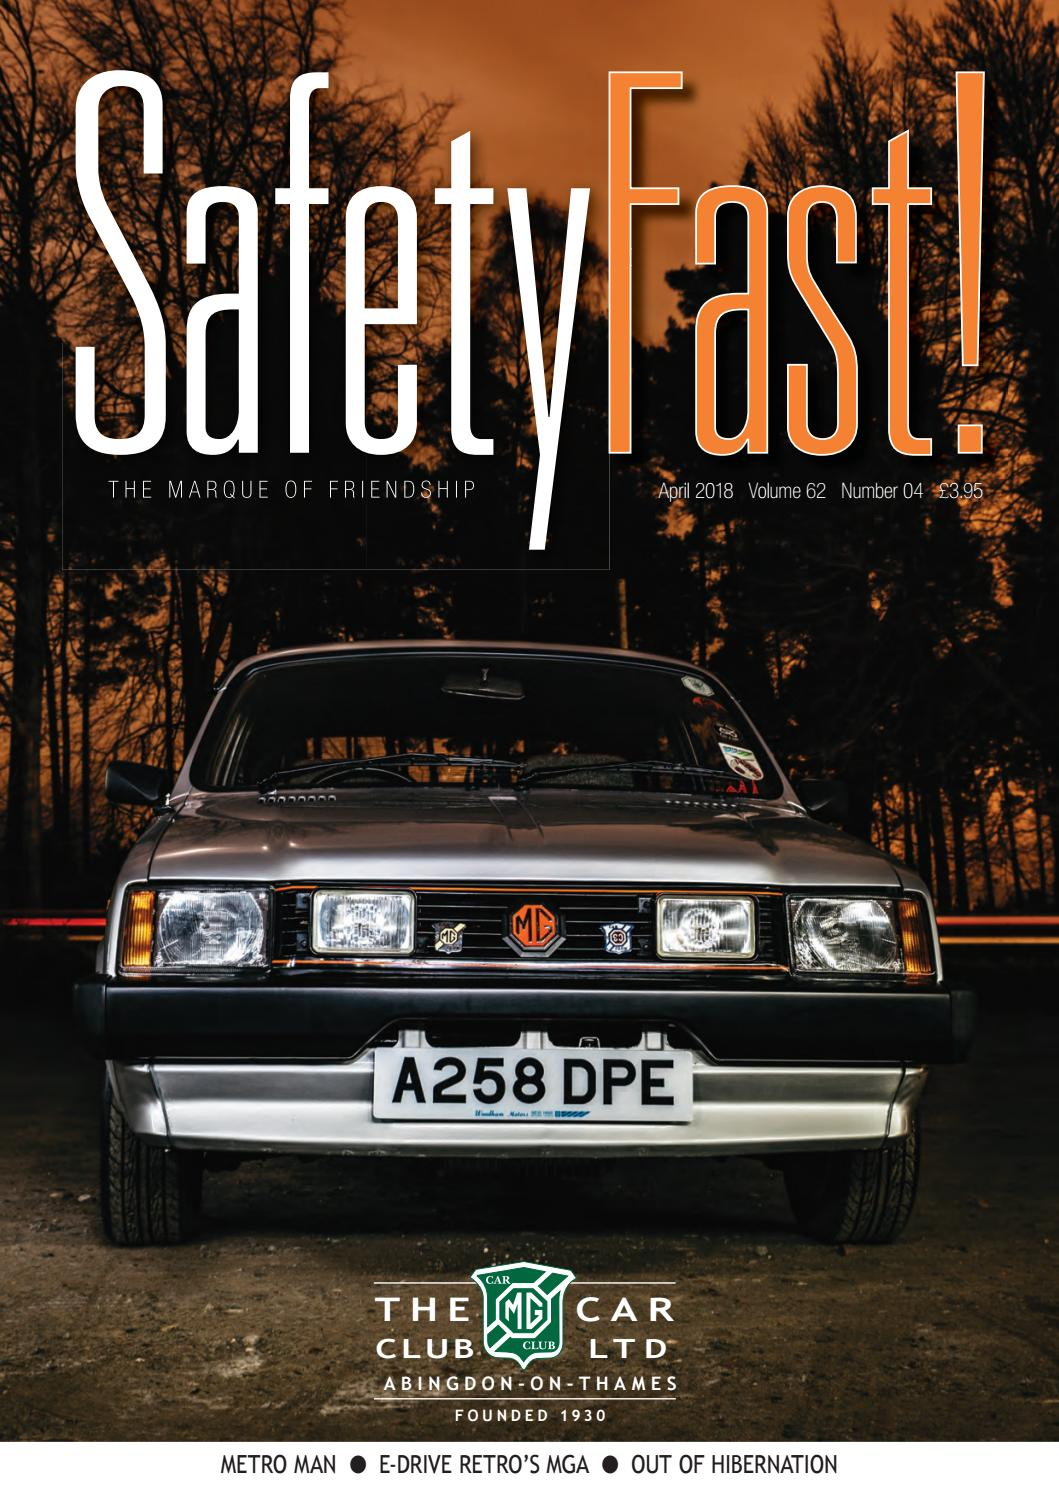 Safety Fast! April 2018 by MG Car Club - issuu